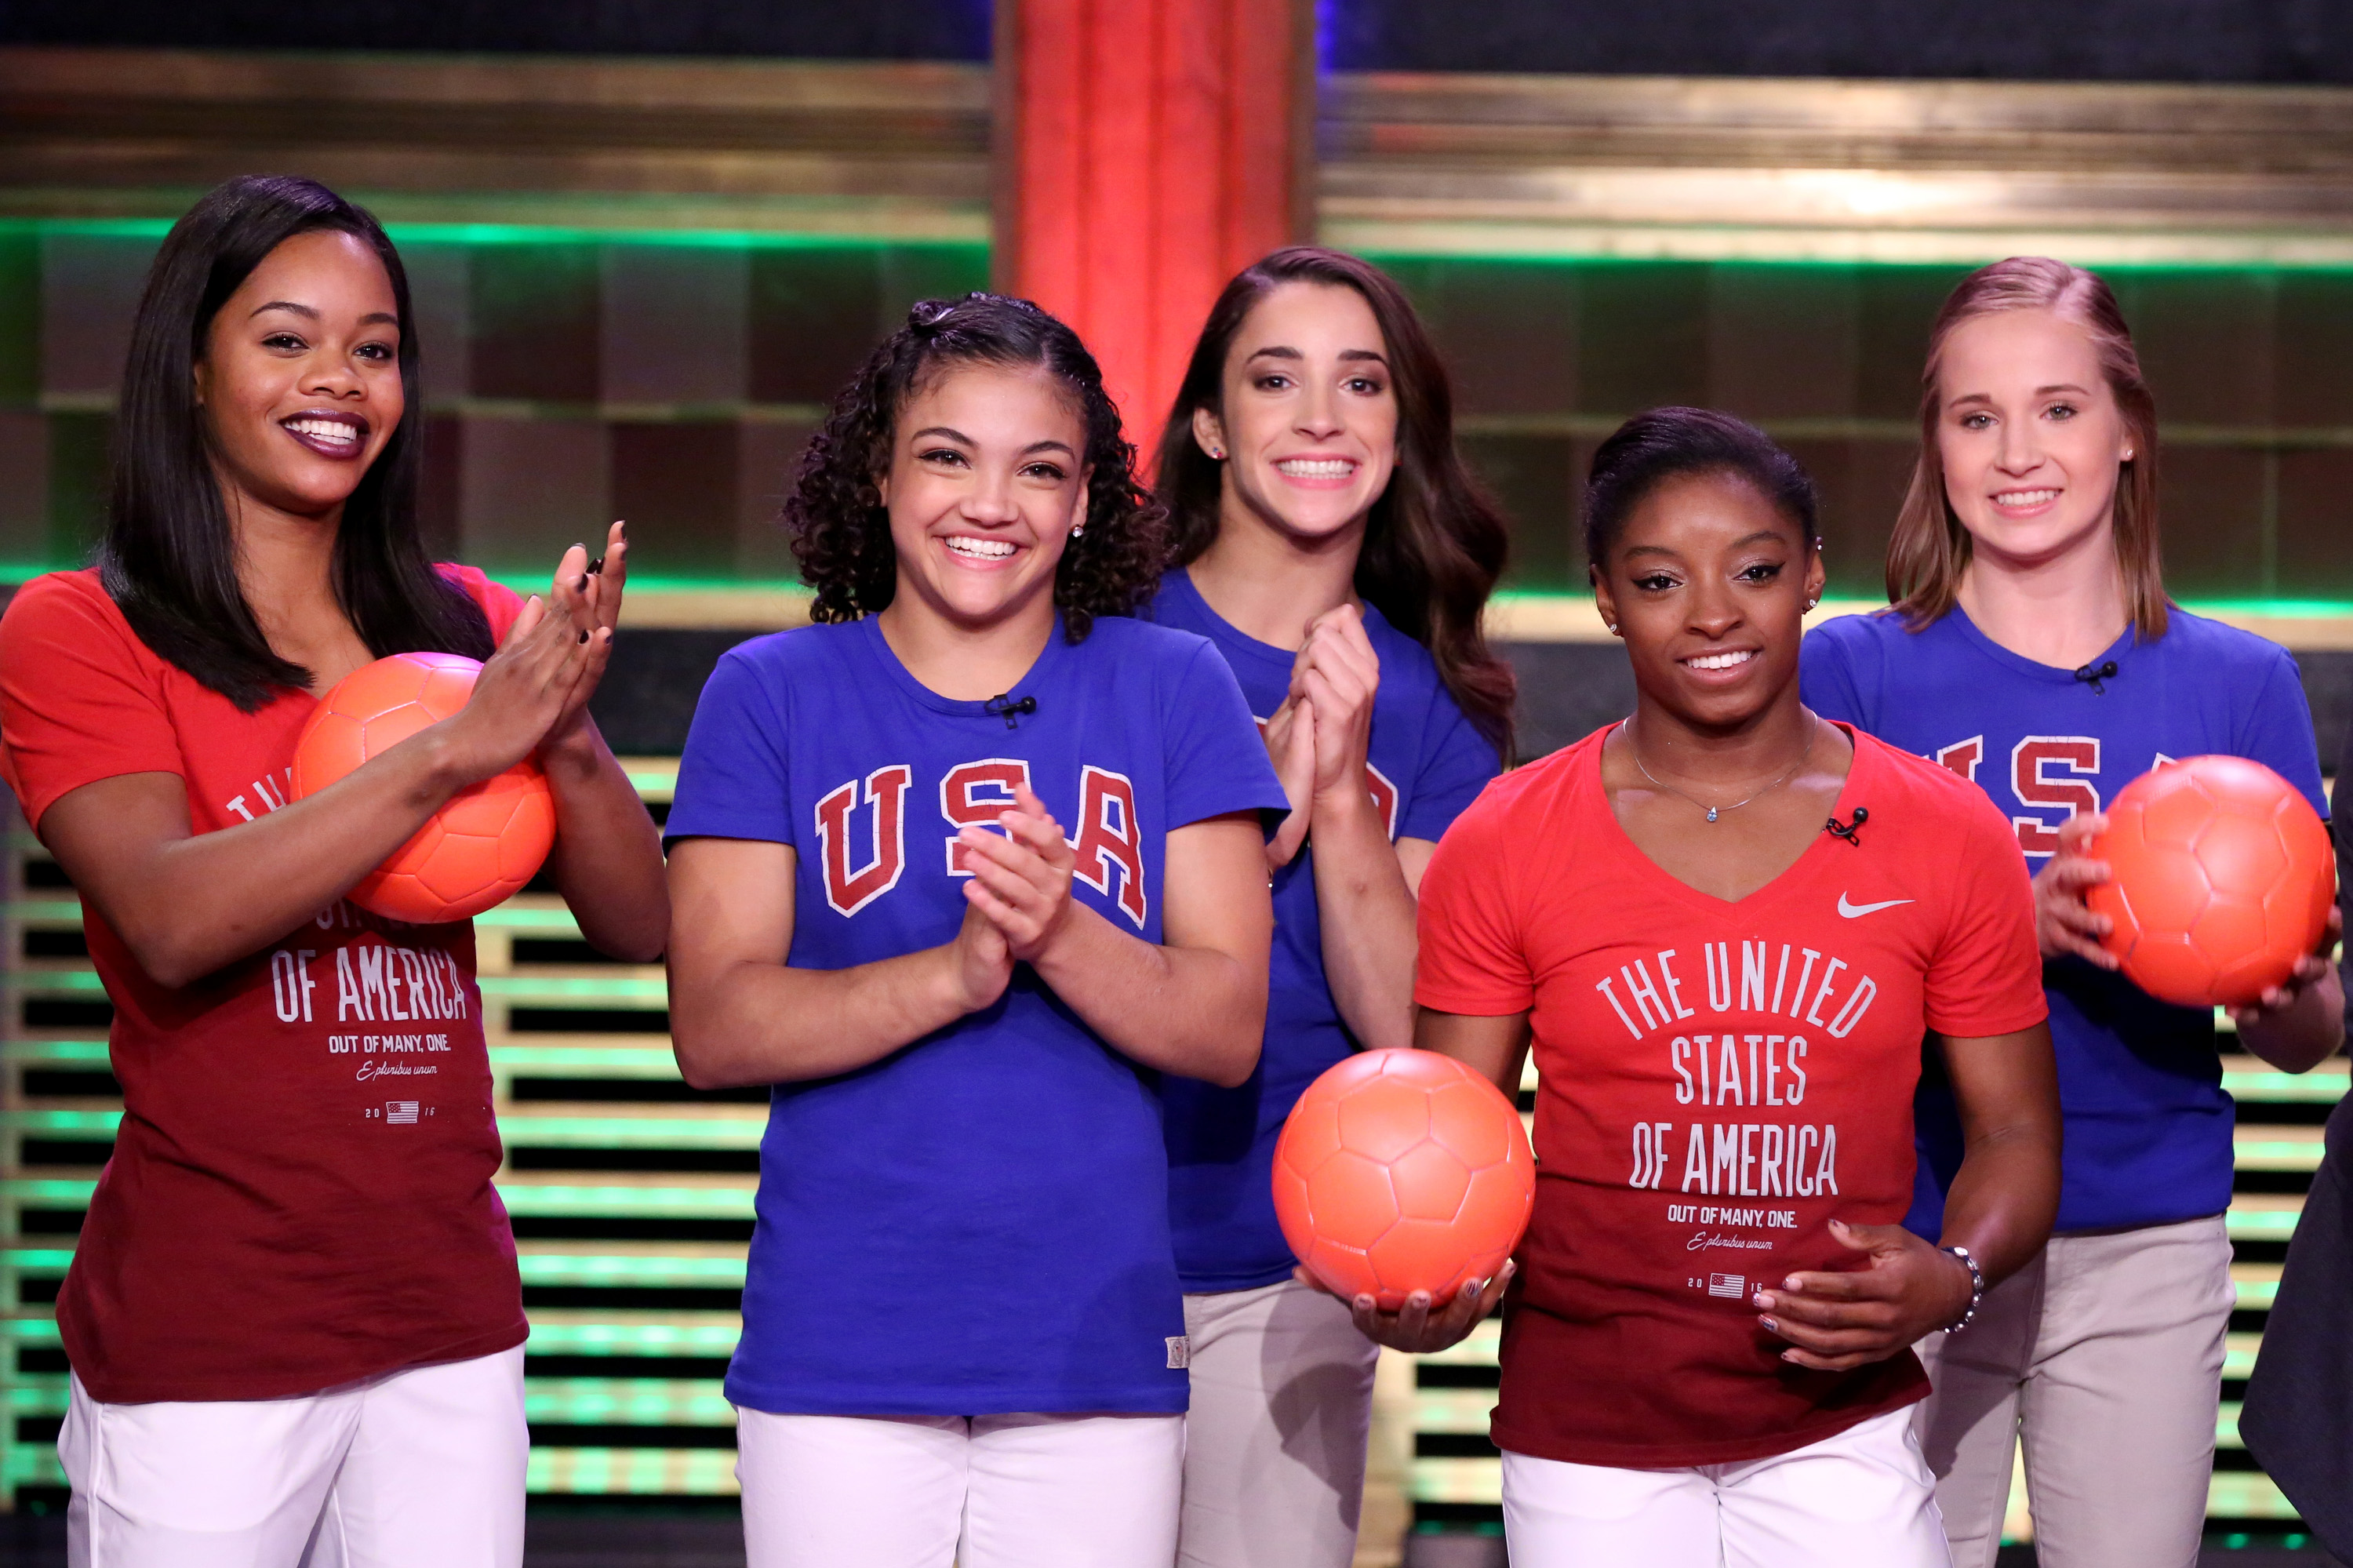 THE TONIGHT SHOW STARRING JIMMY FALLON -- Episode 0518 -- Pictured: (l-r) Gabby Douglas, Laurie Hernandez, Aly Raisman, Simone Biles, and Madison Kocian of the U.S. women's gymnastics team play  Hungry Hungry Humans  on August 23, 2016 -- (Photo by: Andrew Lipovsky/NBC/NBCU Photo Bank via Getty Images)